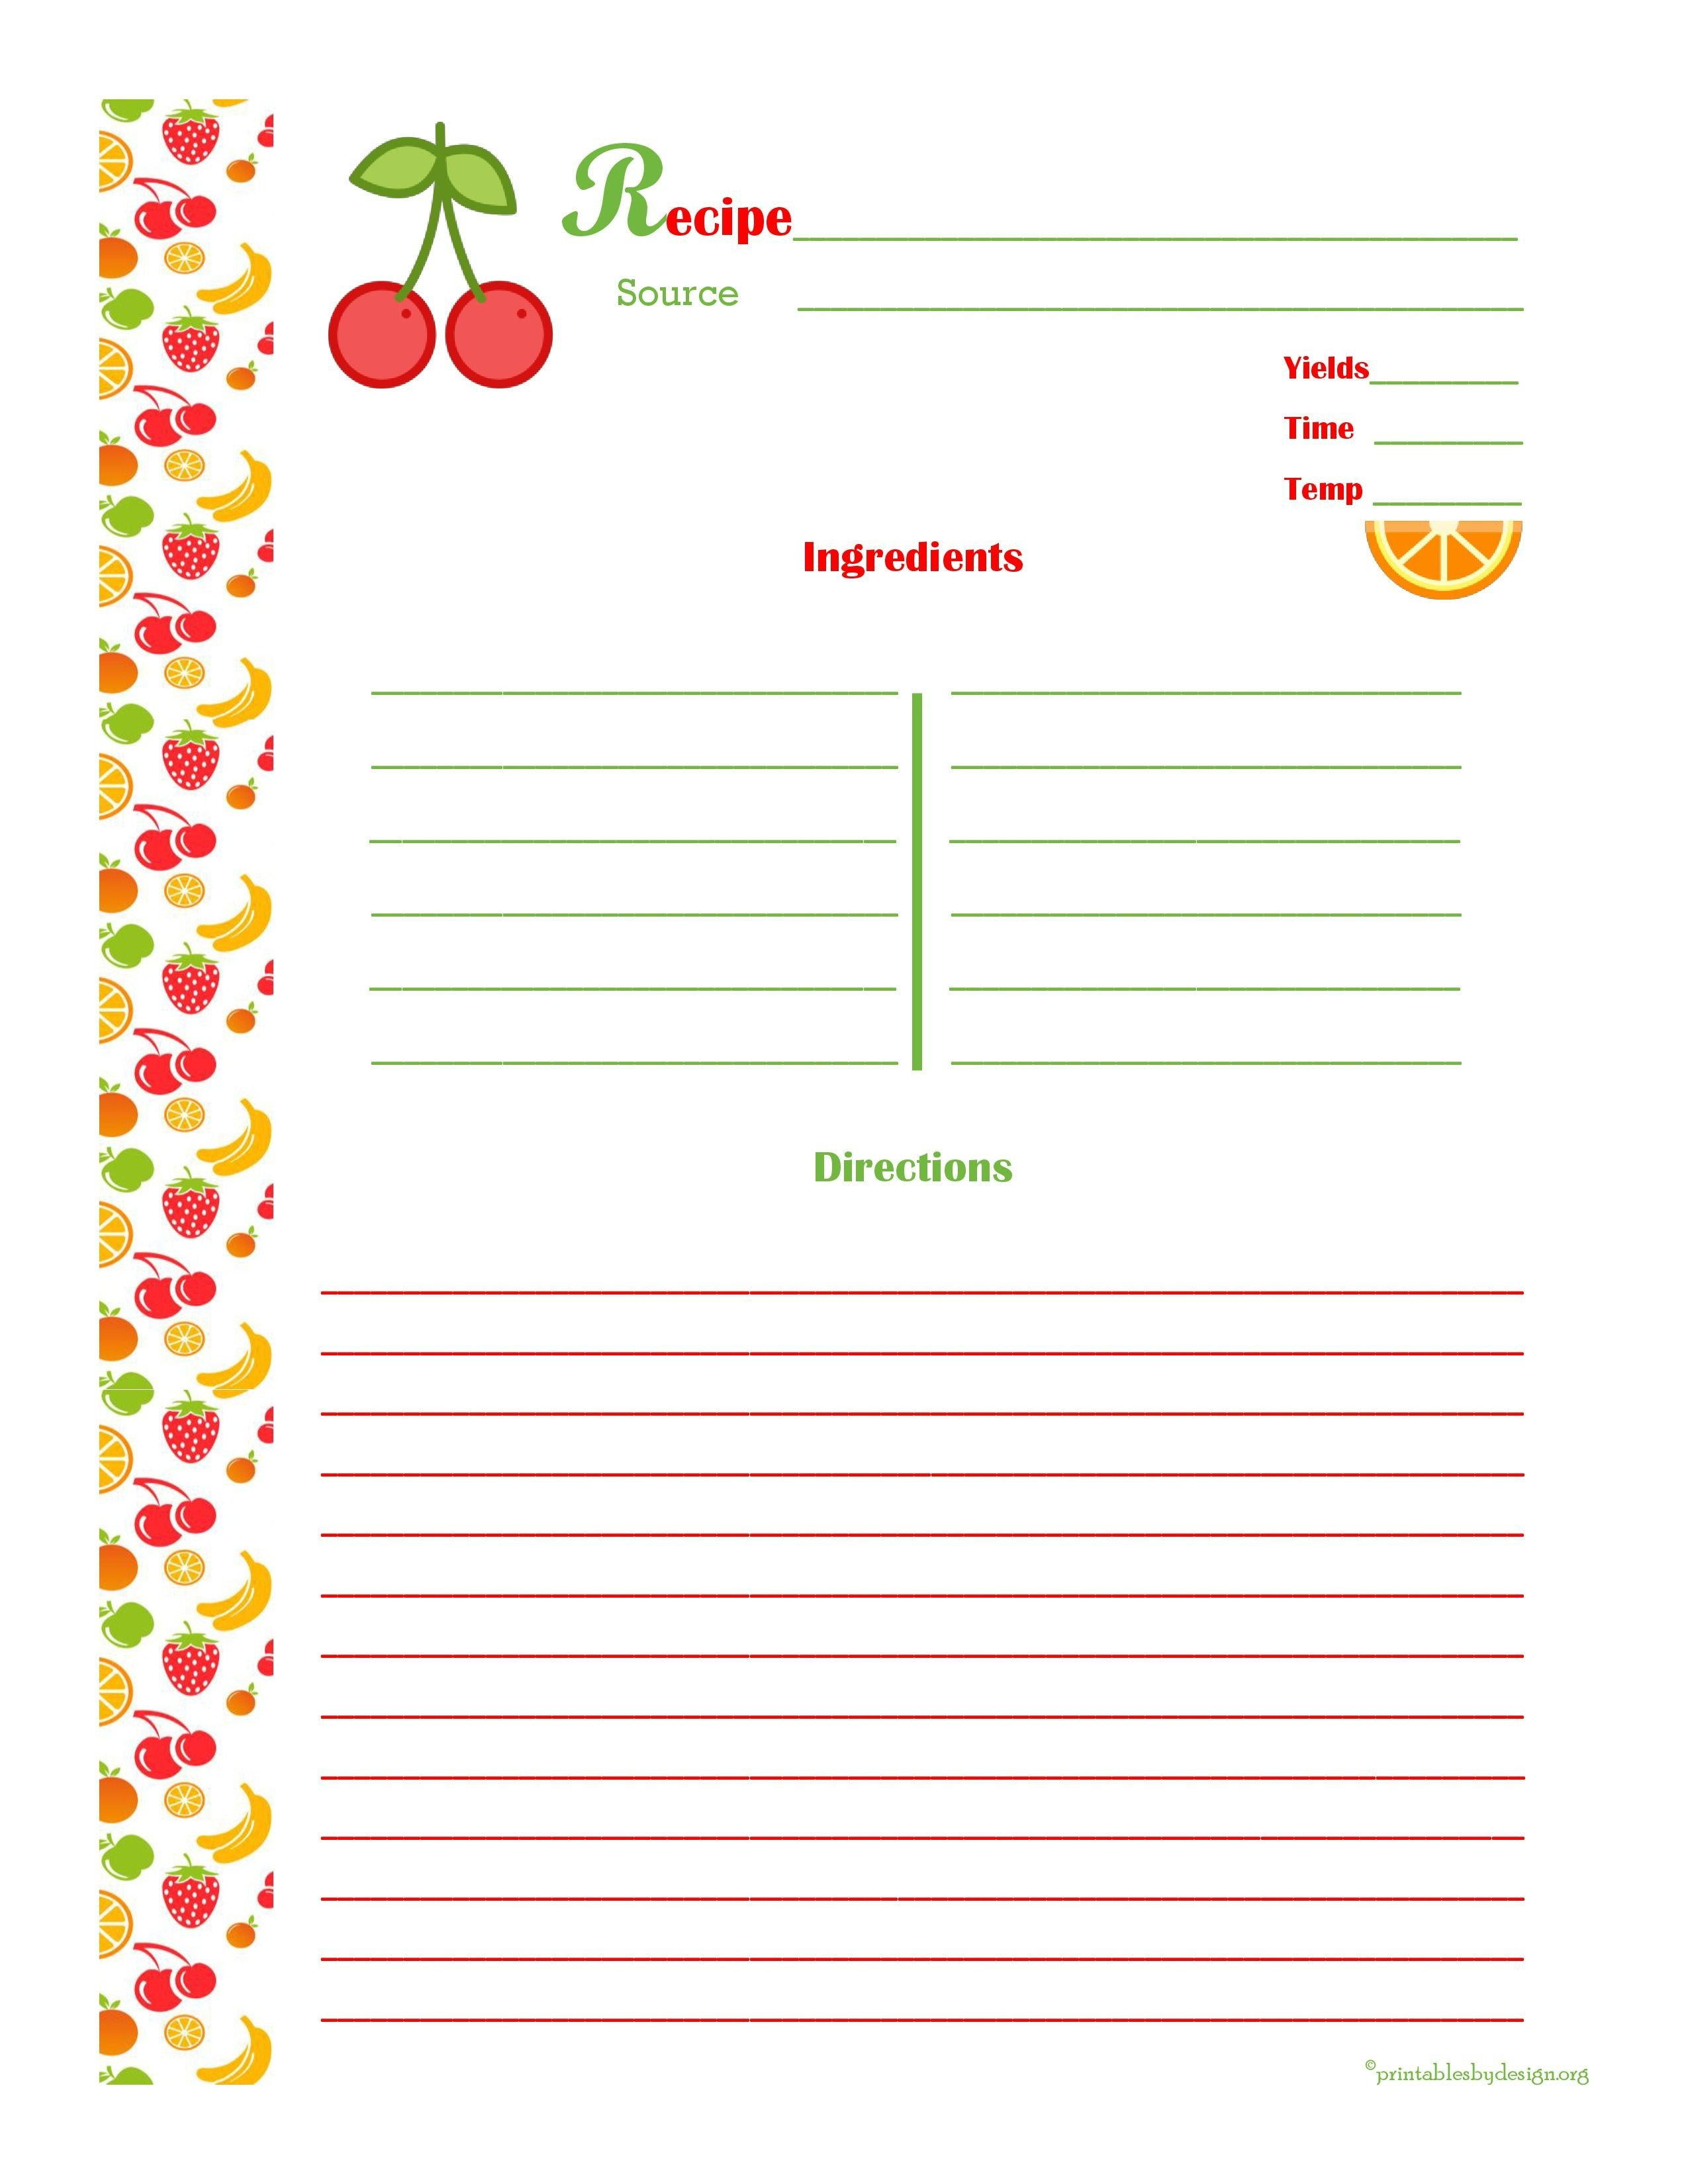 Recipe Template for Pages Cherry & orange Recipe Card Full Page